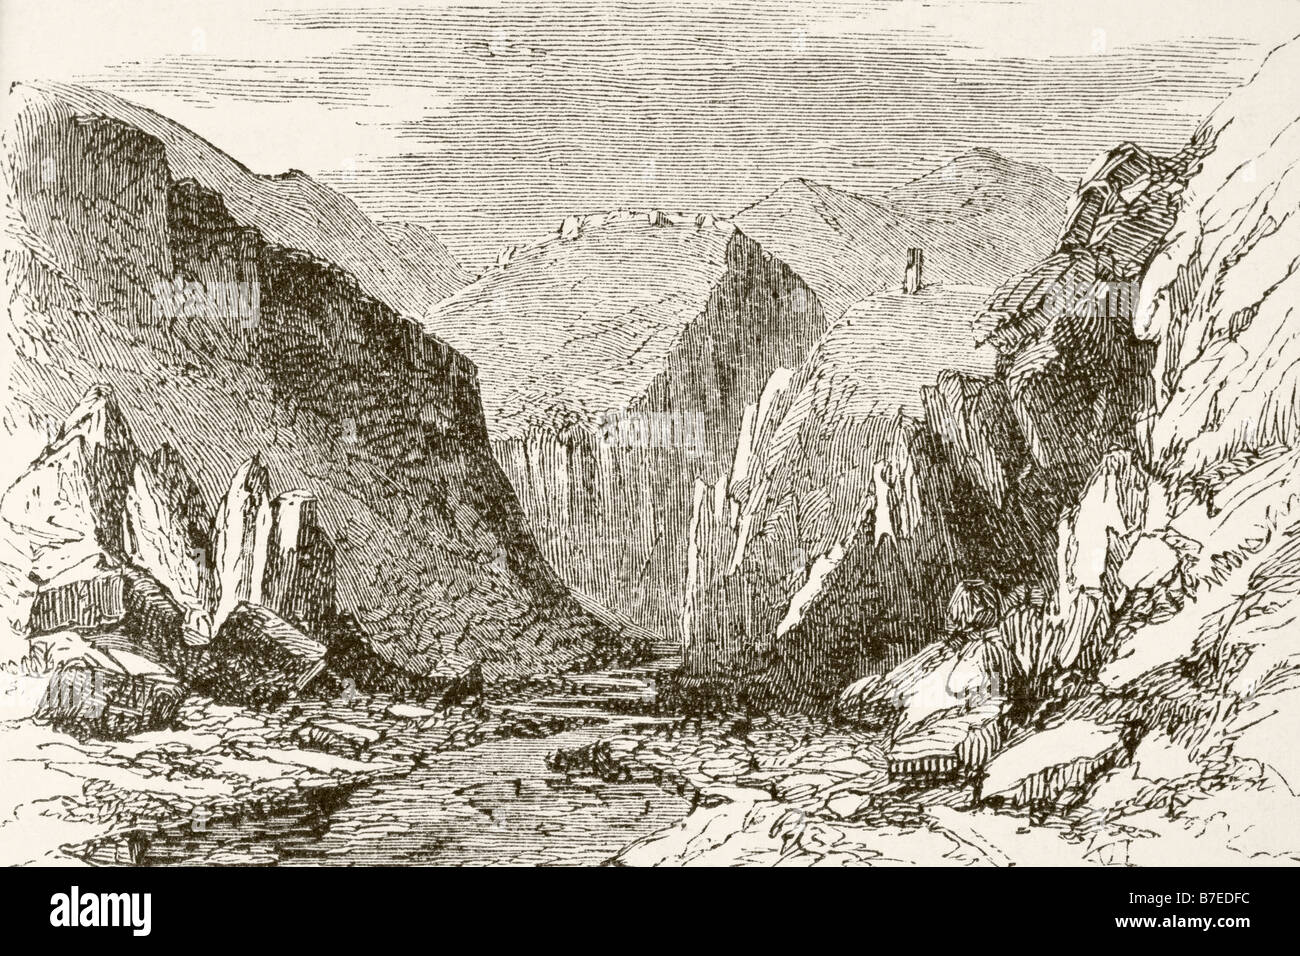 The Khyber Pass in the 1890 s - Stock Image